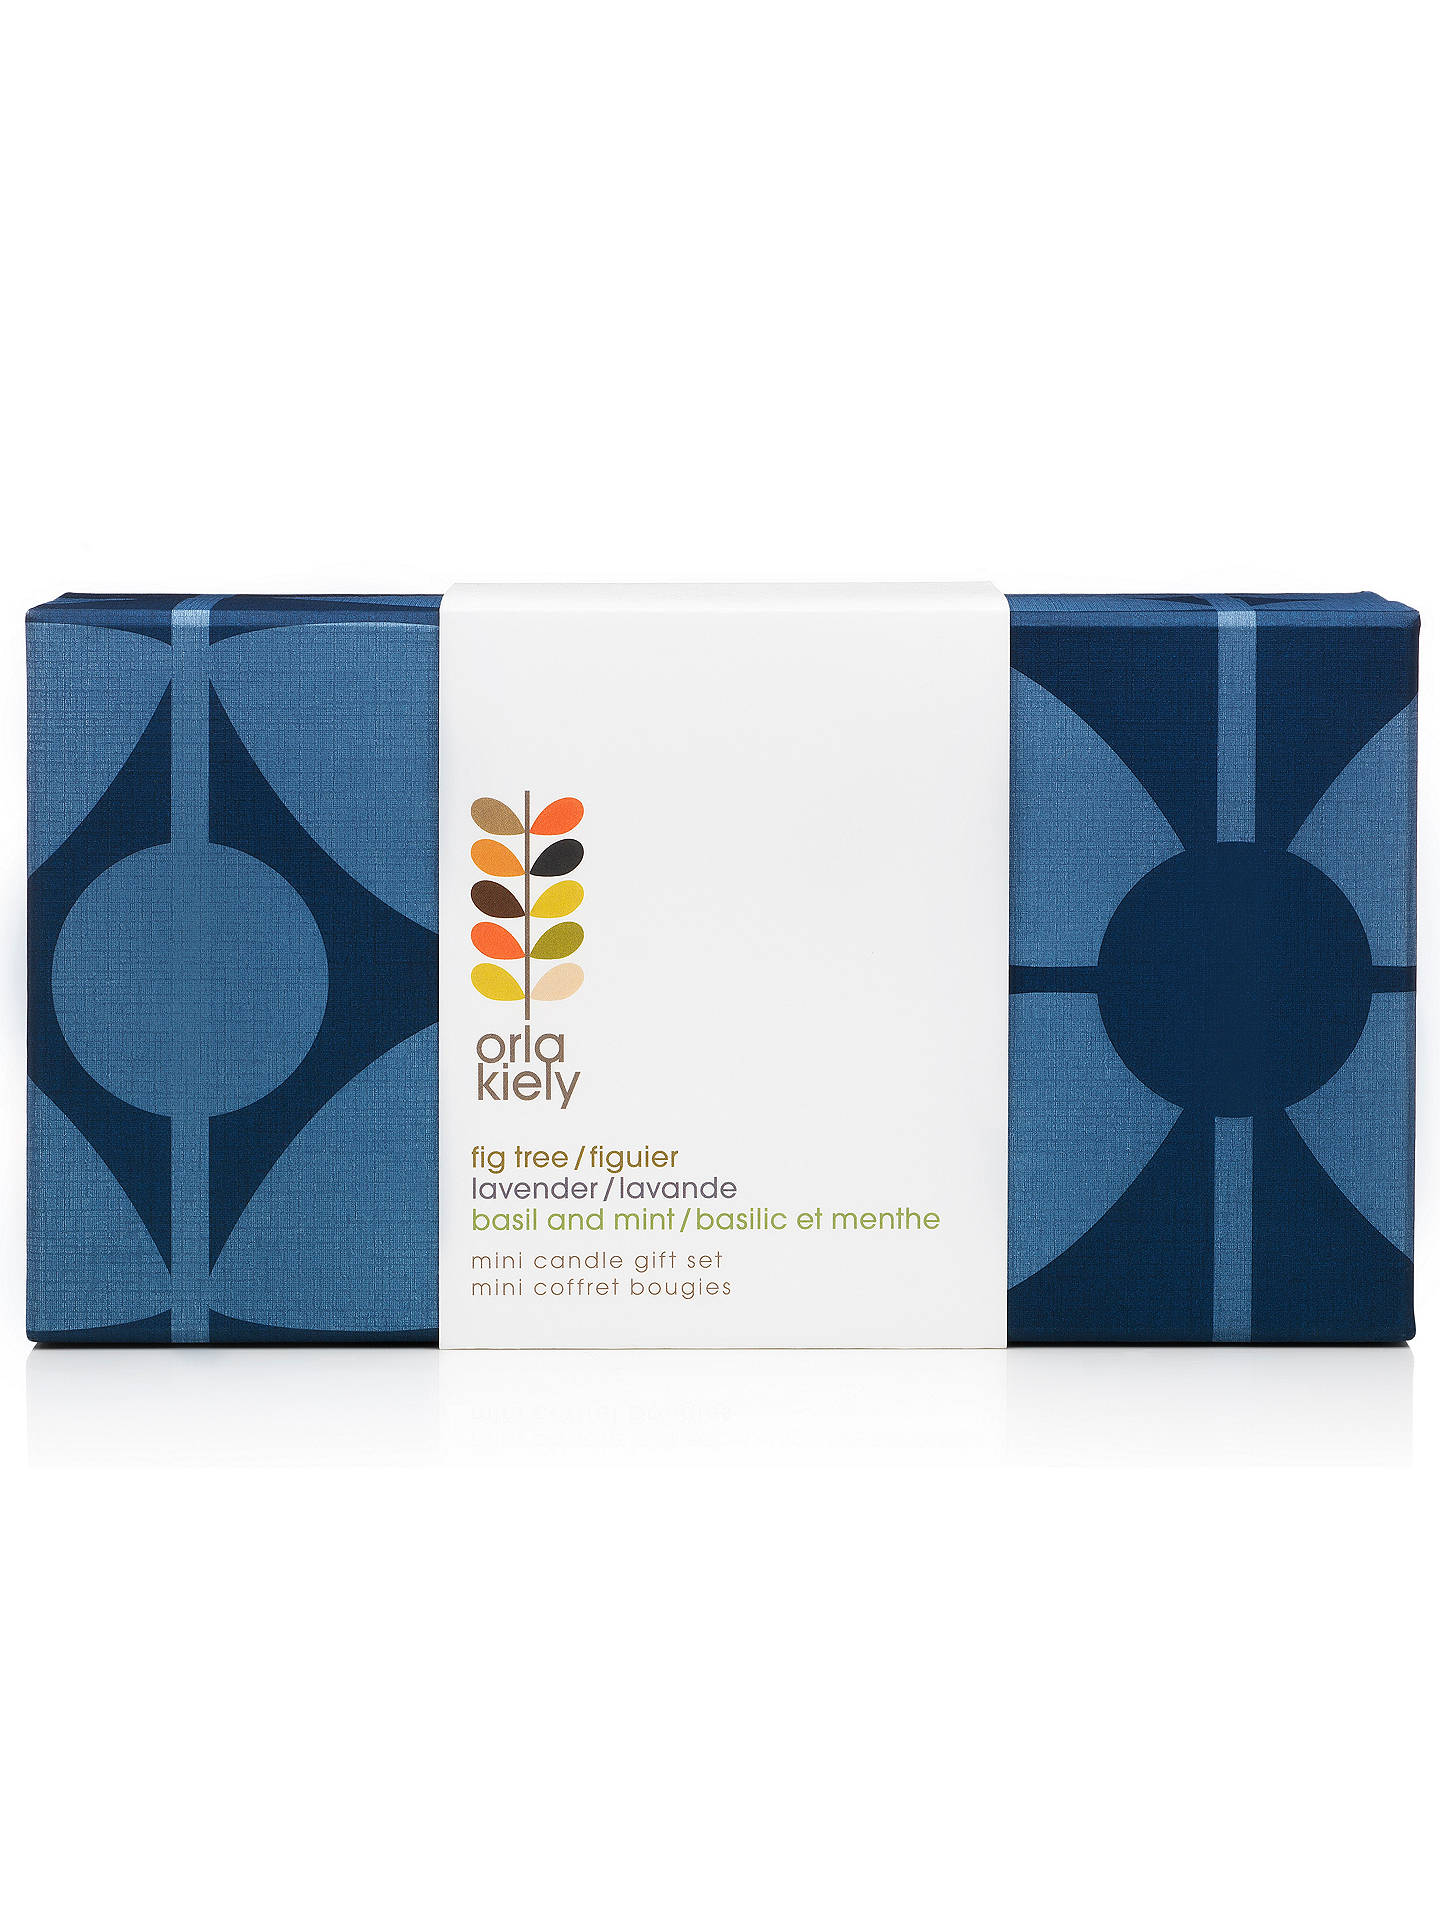 Buy Orla Kiely Sixties Stem Mini Candle Gift Set, Set of 3 Online at johnlewis.com